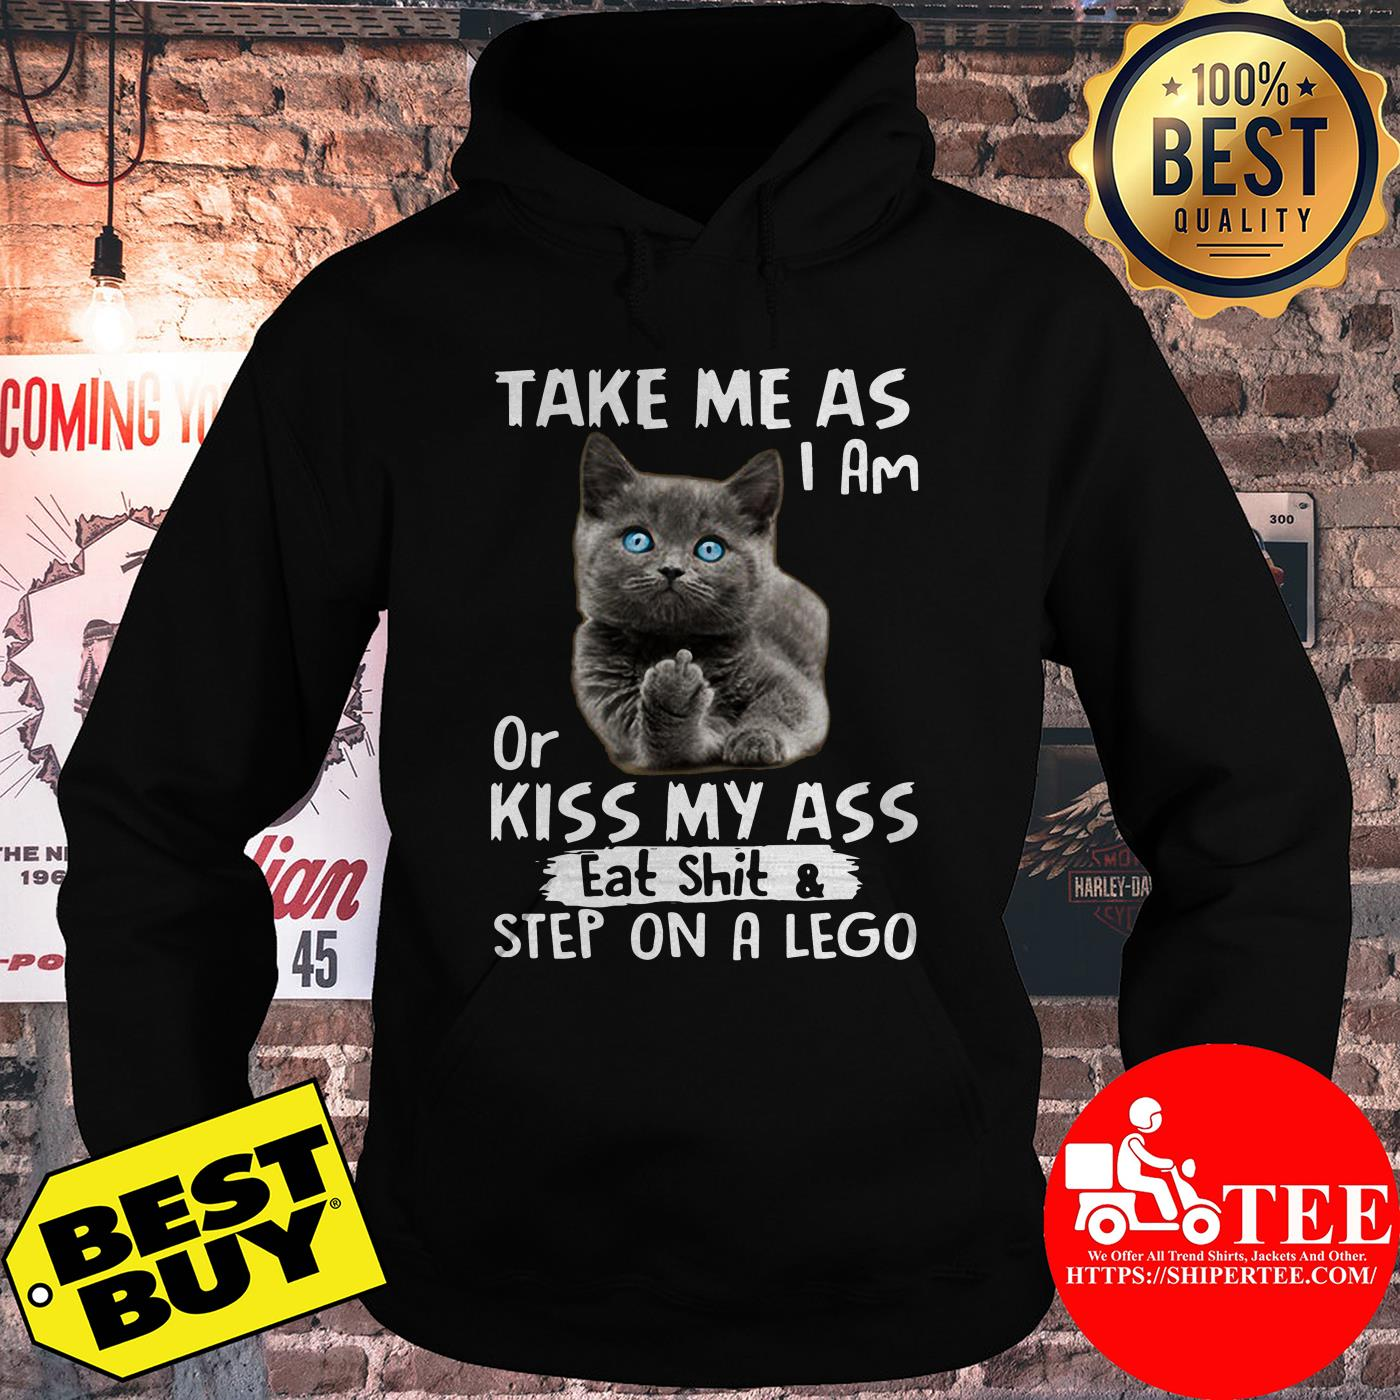 Take me as I am or kiss my ass eat shit & step on a lego hoodie